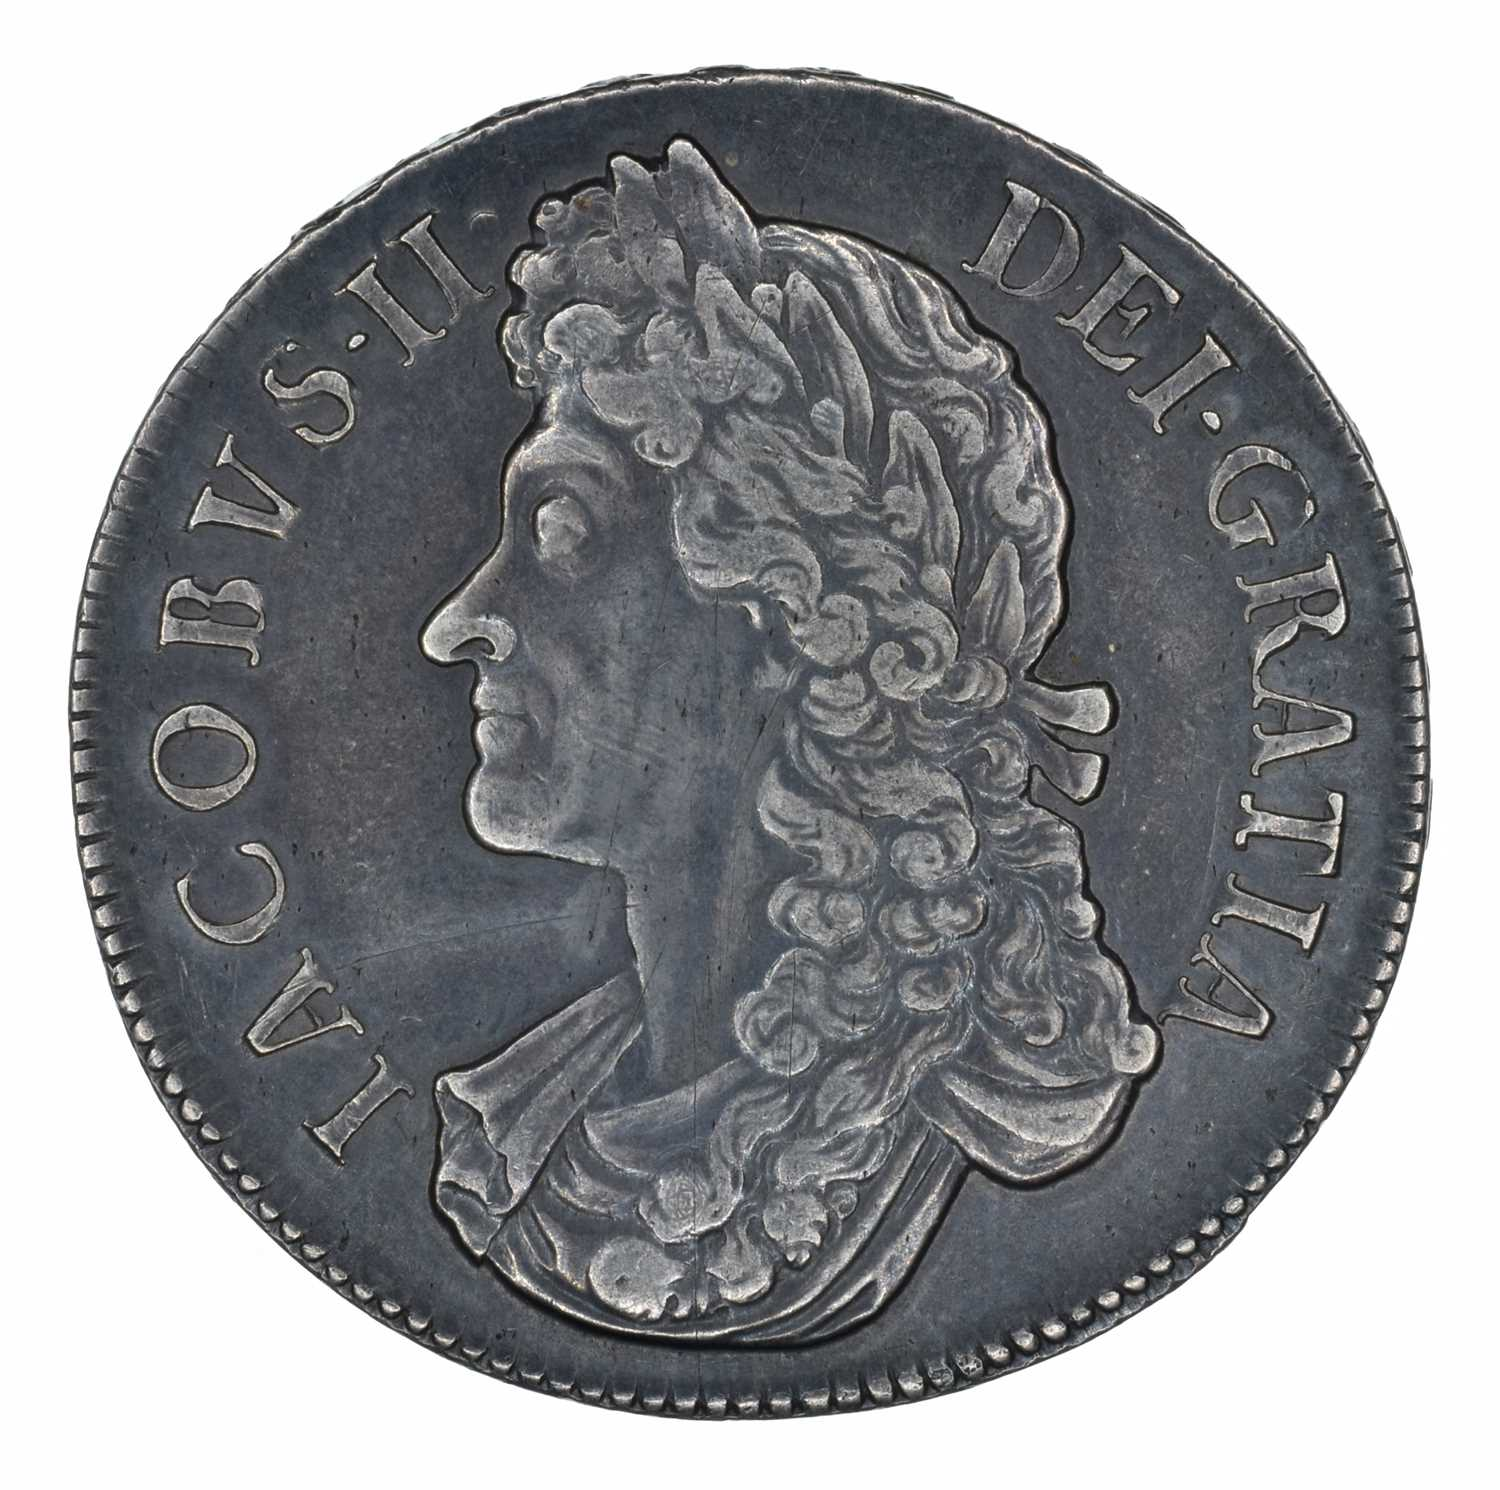 Lot 14 - King James II, Crown, 1688 QVARTO.